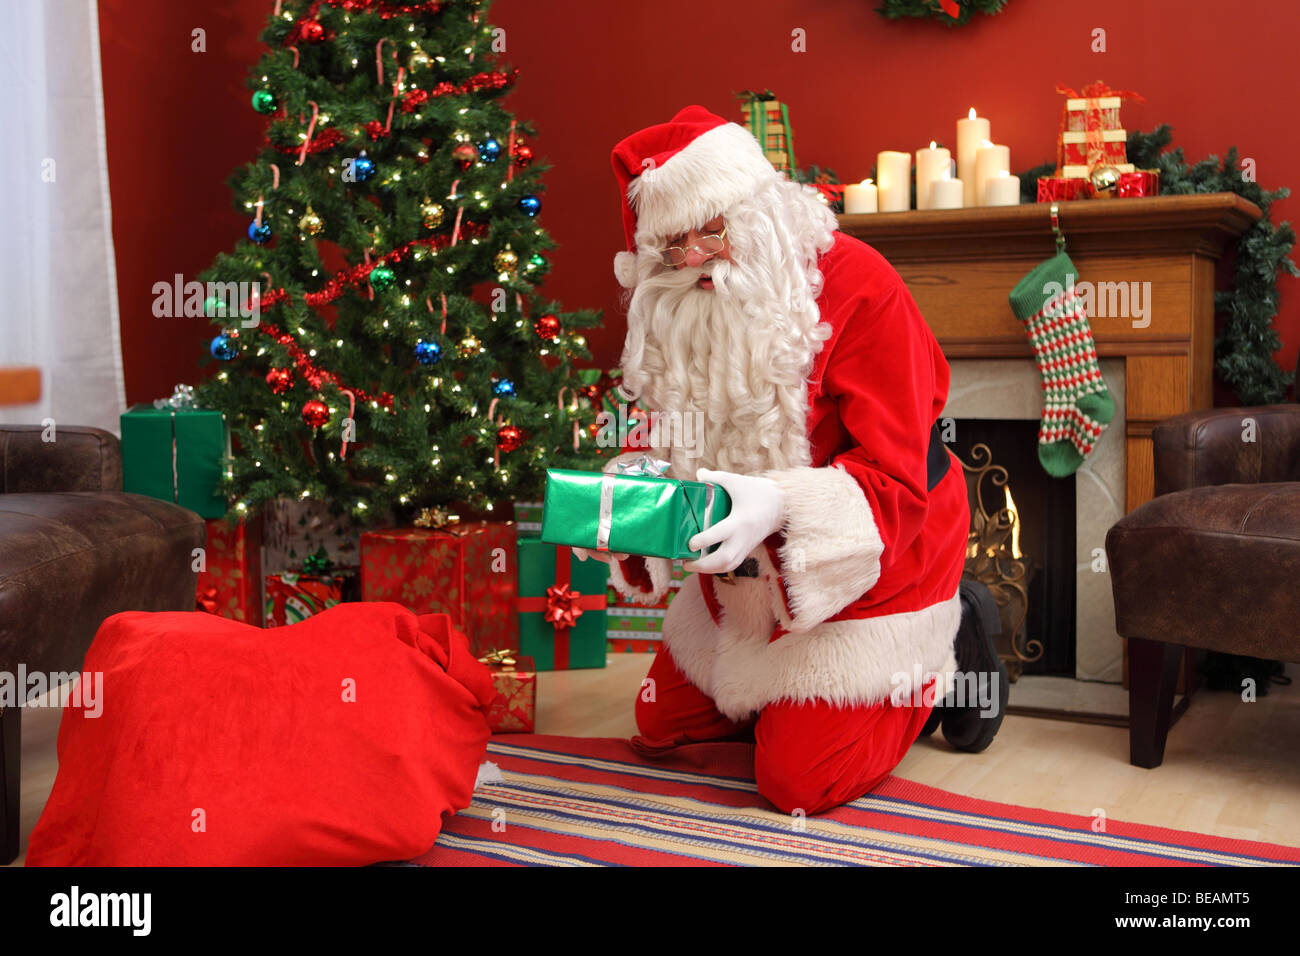 santa claus putting gifts under christmas tree stock image